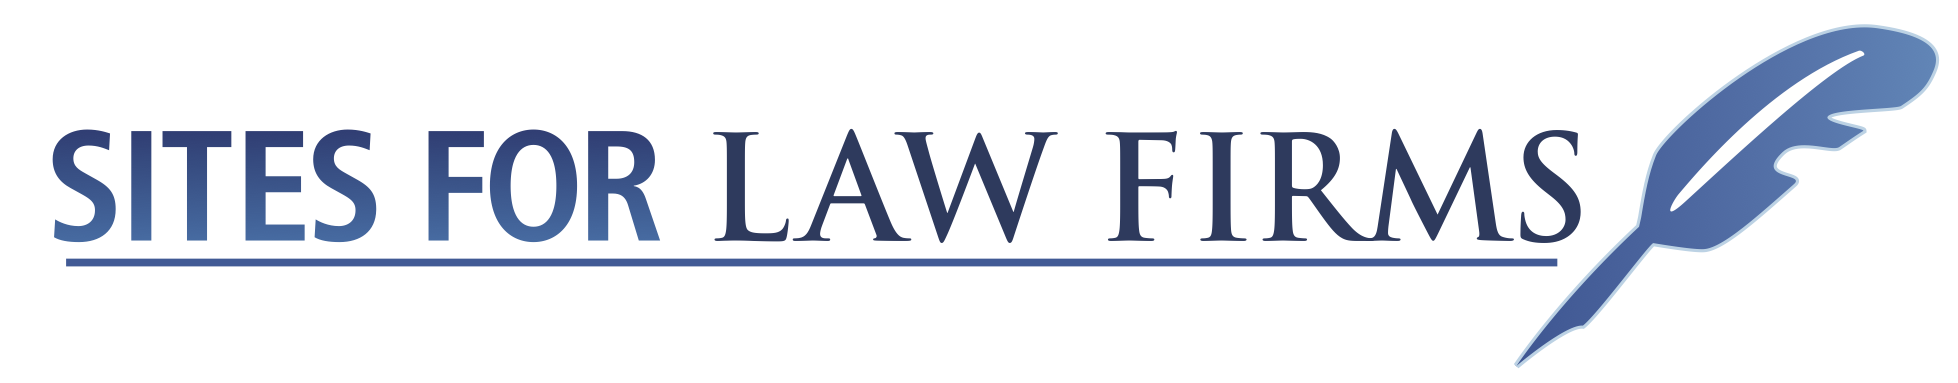 Sites for Law Firms : Support Help Center home page